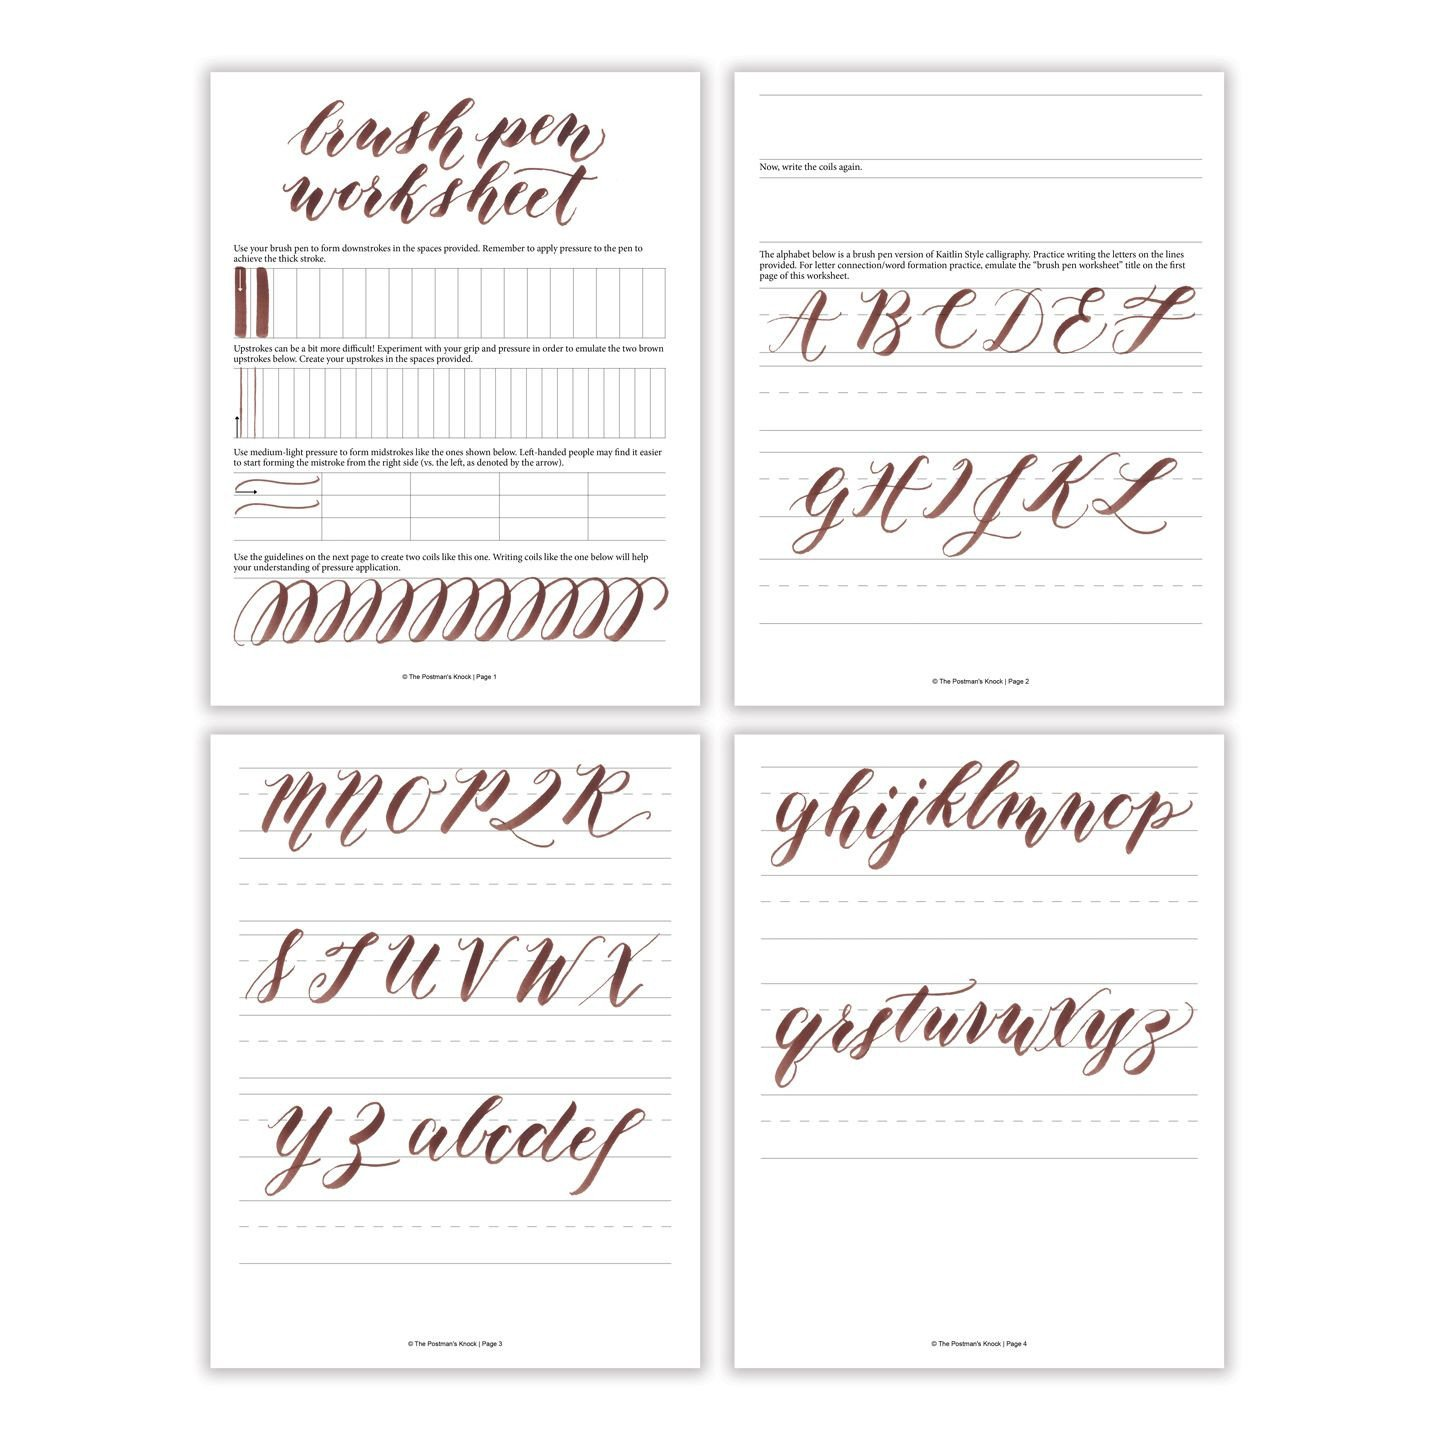 Learn Calligraphy Worksheets Free Basic Brush Pen Calligraphy Worksheet – the Postman S